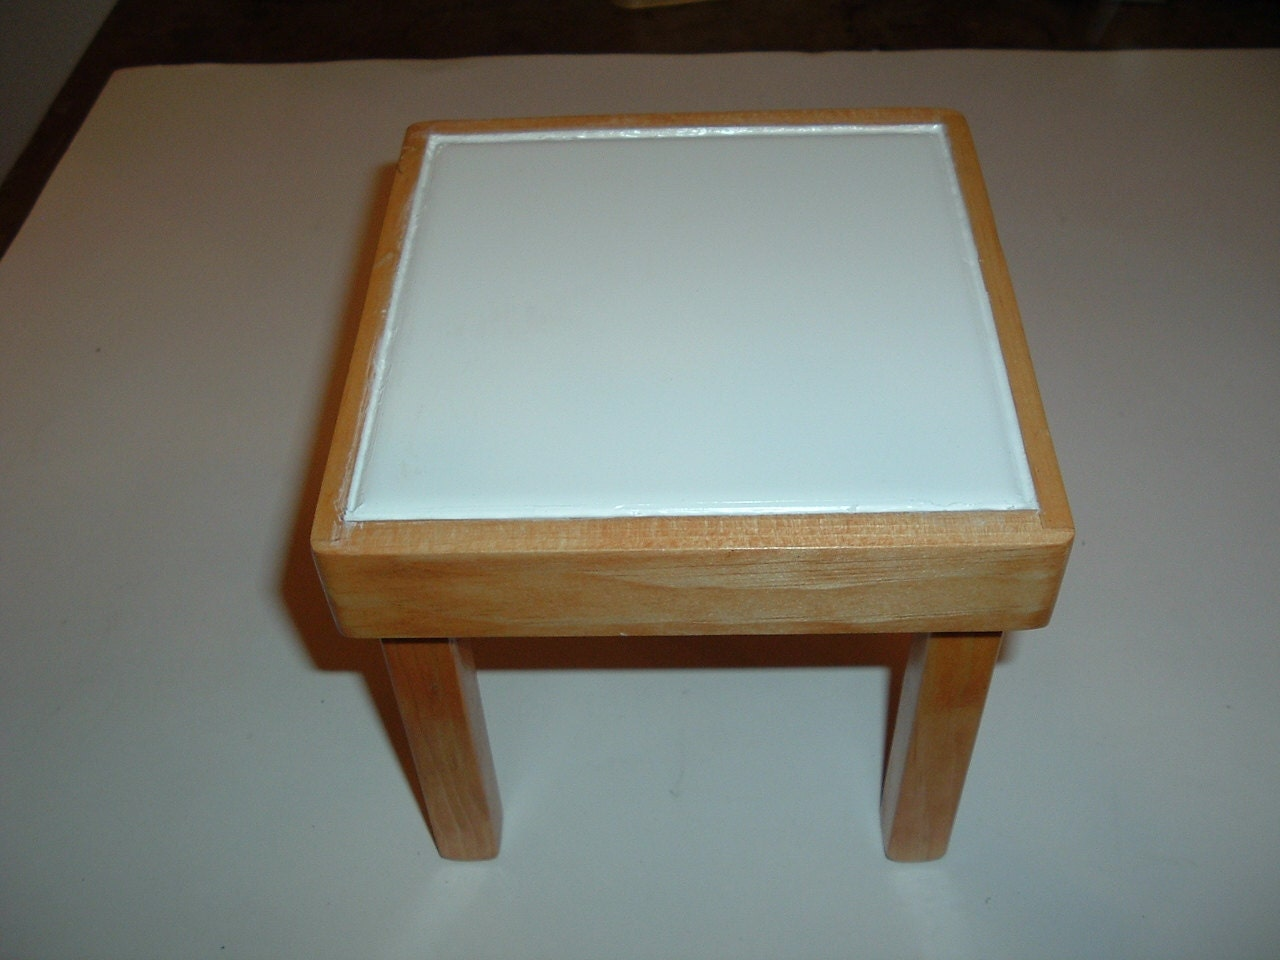 Handmade wooden plant stand for a table top or hot plate